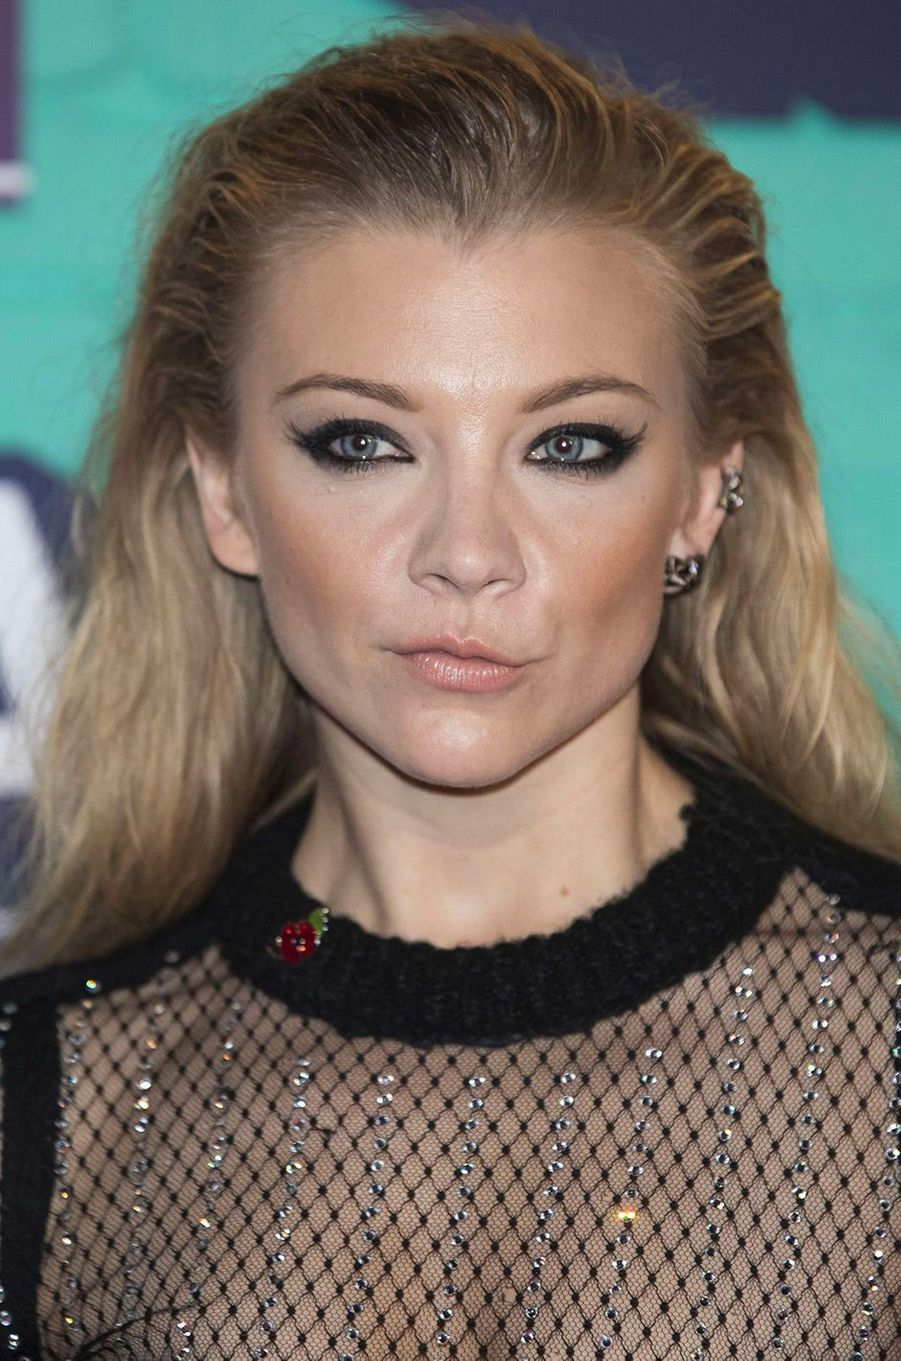 Natalie Dormer aux MTV Europe Music Awards dimanche 12 novembre, à Londres